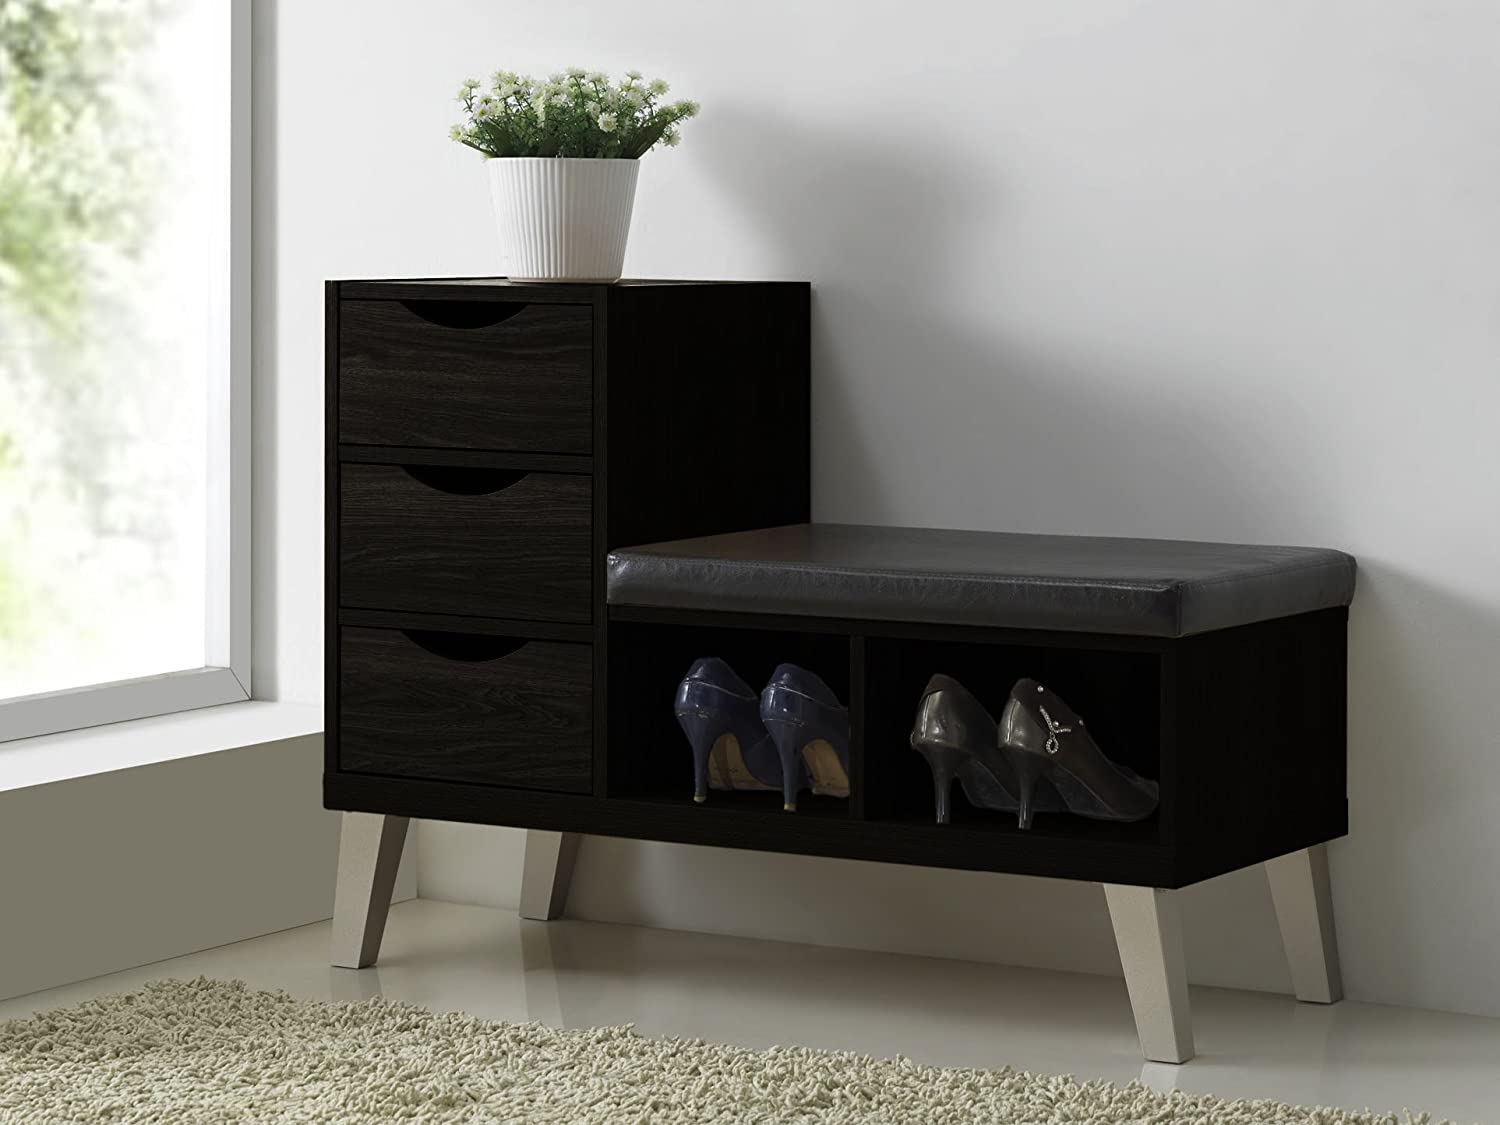 Amazon.com: Baxton Studio Arielle Modern Contemporary Wood 3 Drawer Shoe  Storage Padded Leatherette Seating Bench With Two Open Shelves, Dark Brown:  Kitchen ...